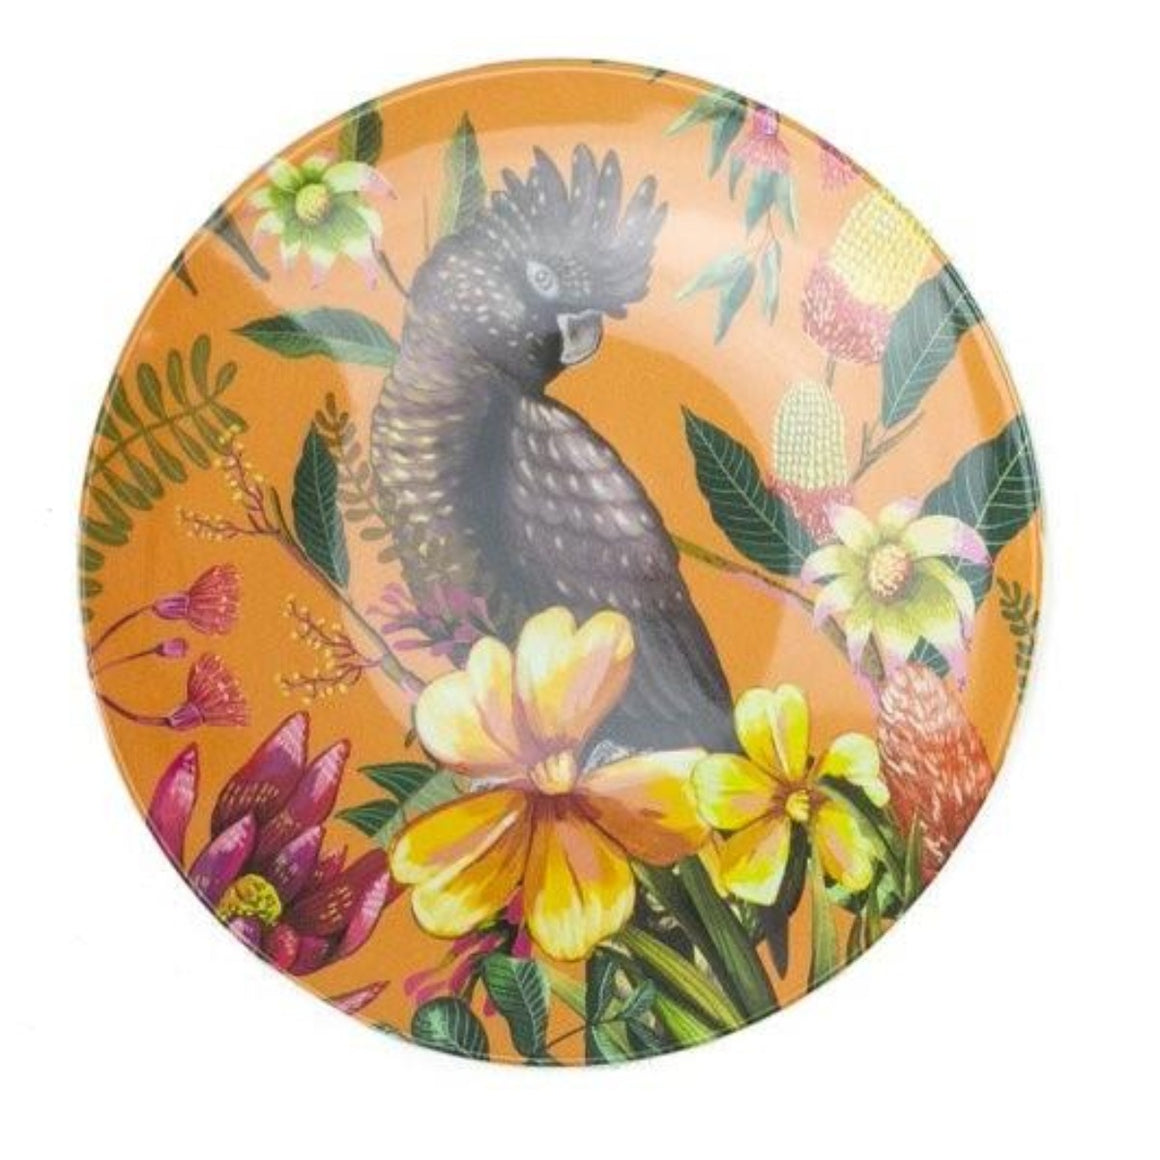 Plate | Floral Paradiso | Black Cockatoo